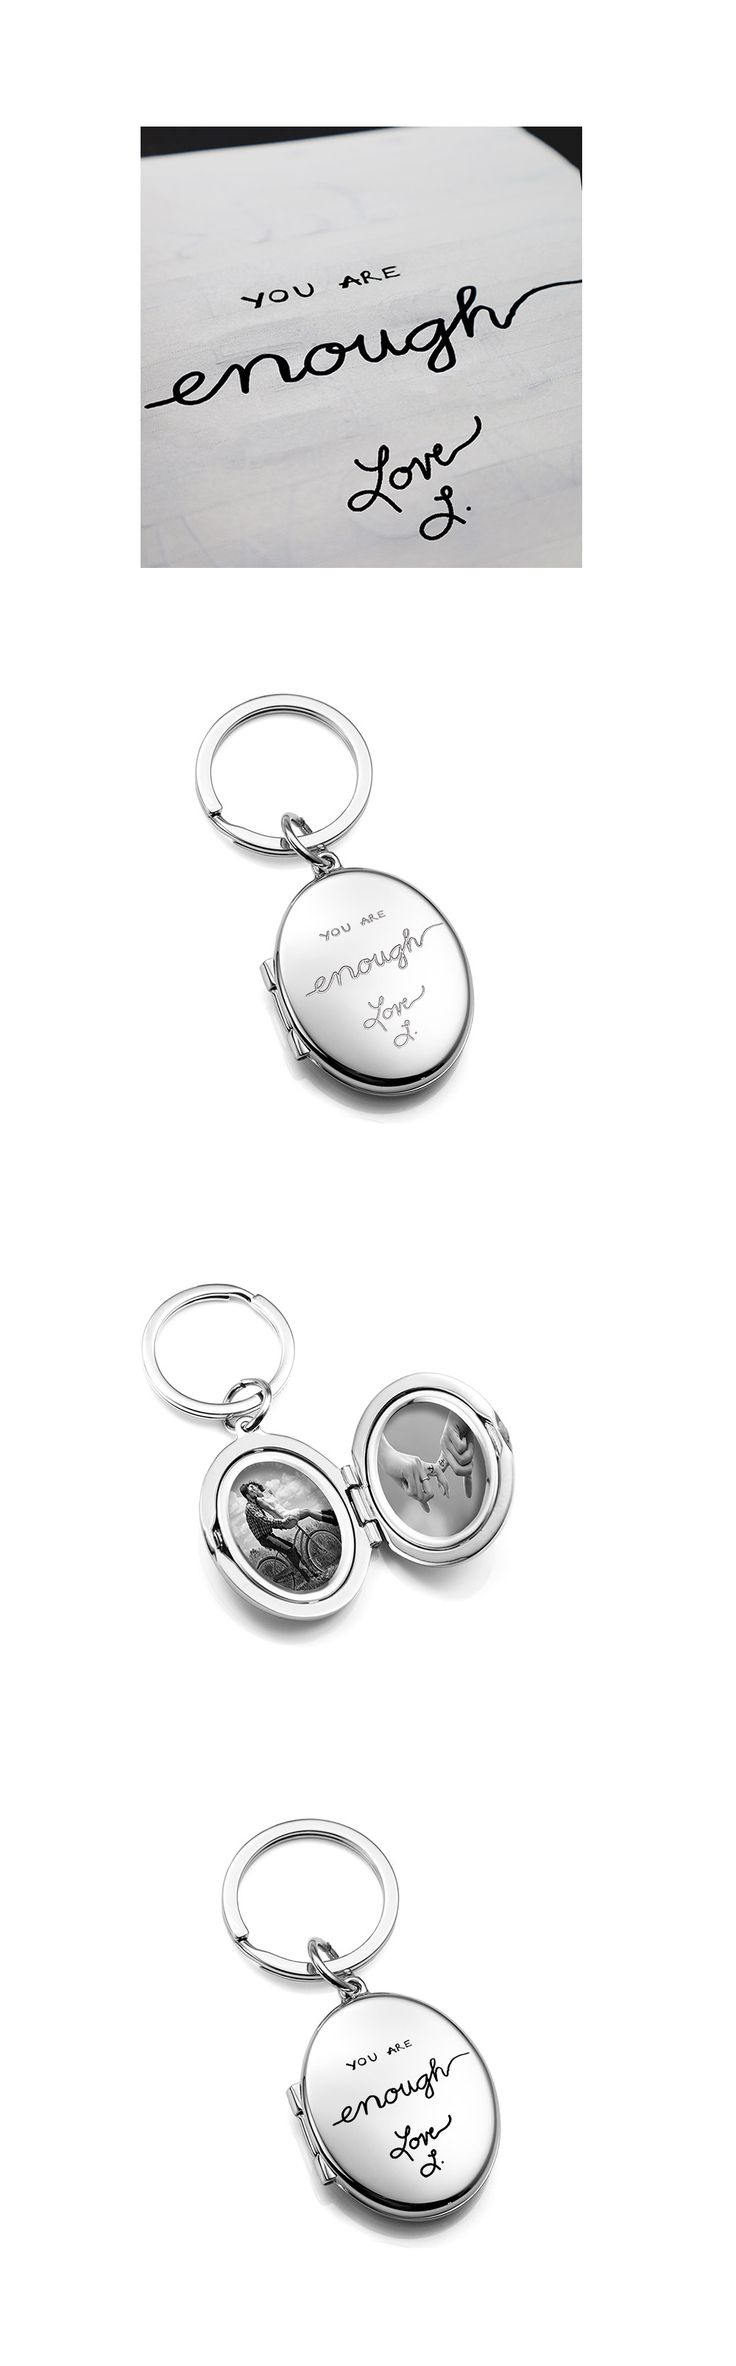 lg locket wid chain lockets product key keychain engraved heart